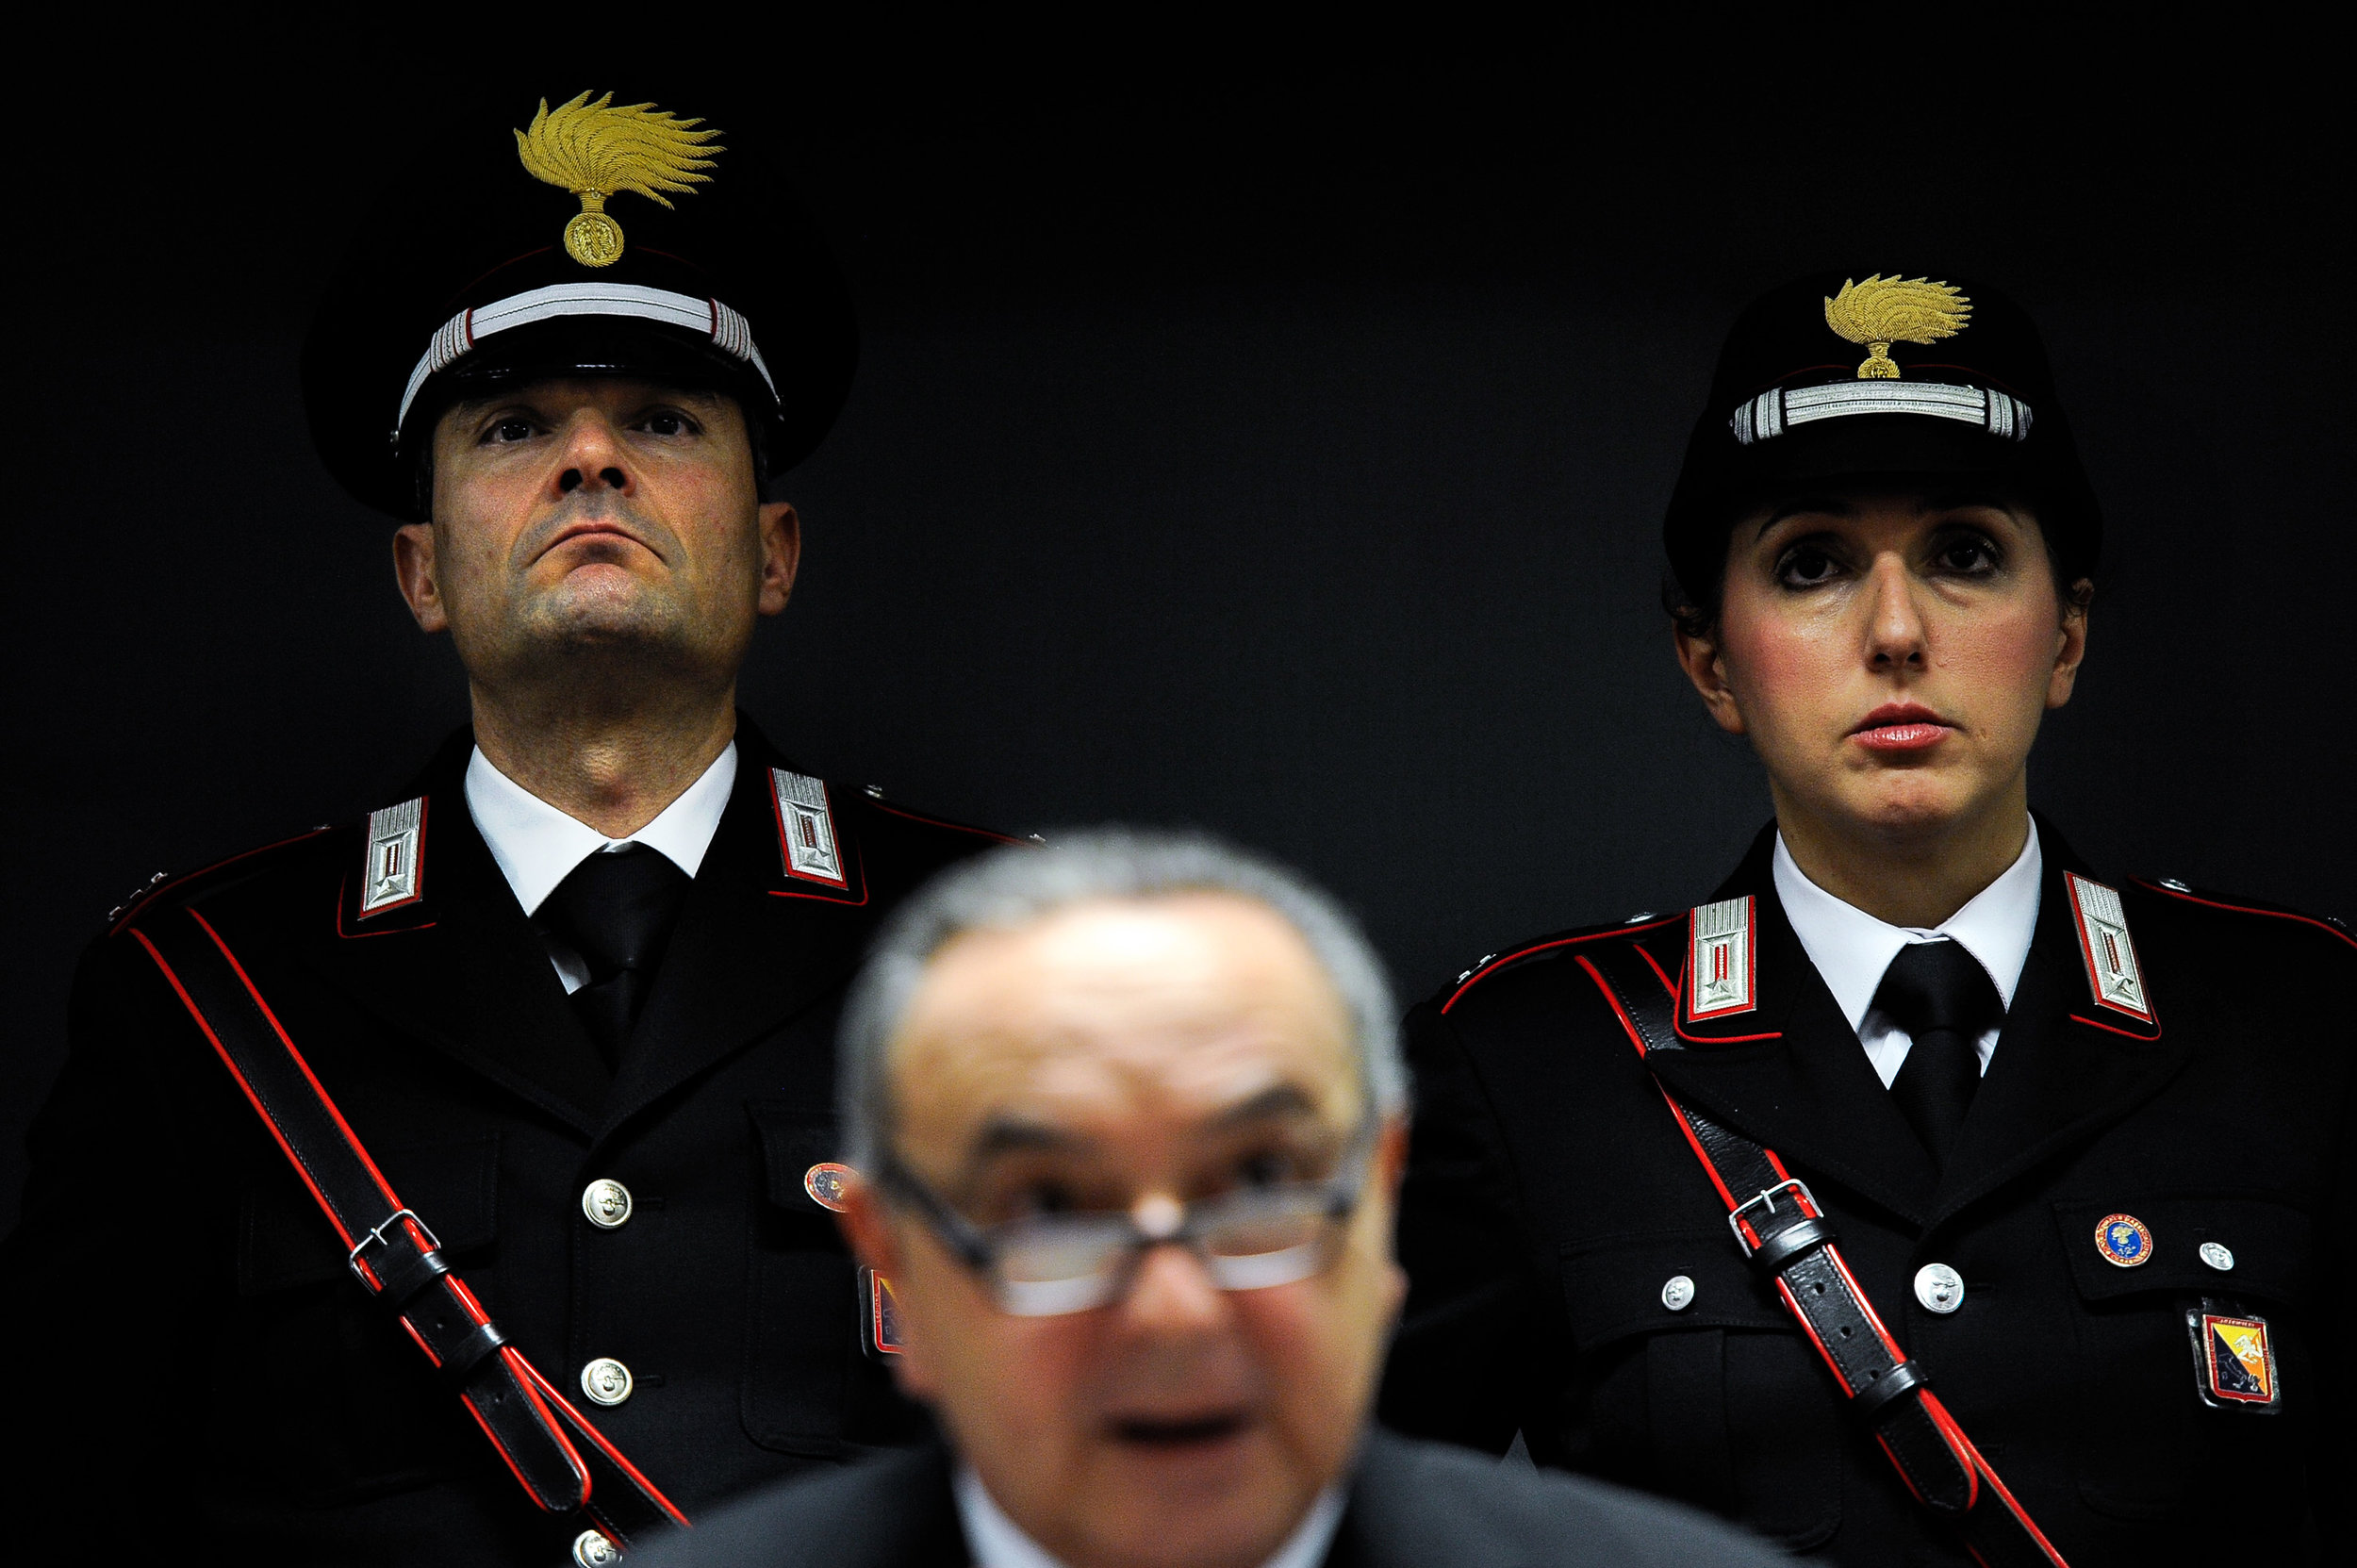 Palermo Chief Prosecutor Francesco Lo Voi speaks during a news conference in Palermo, Italy, December 4, 2018.